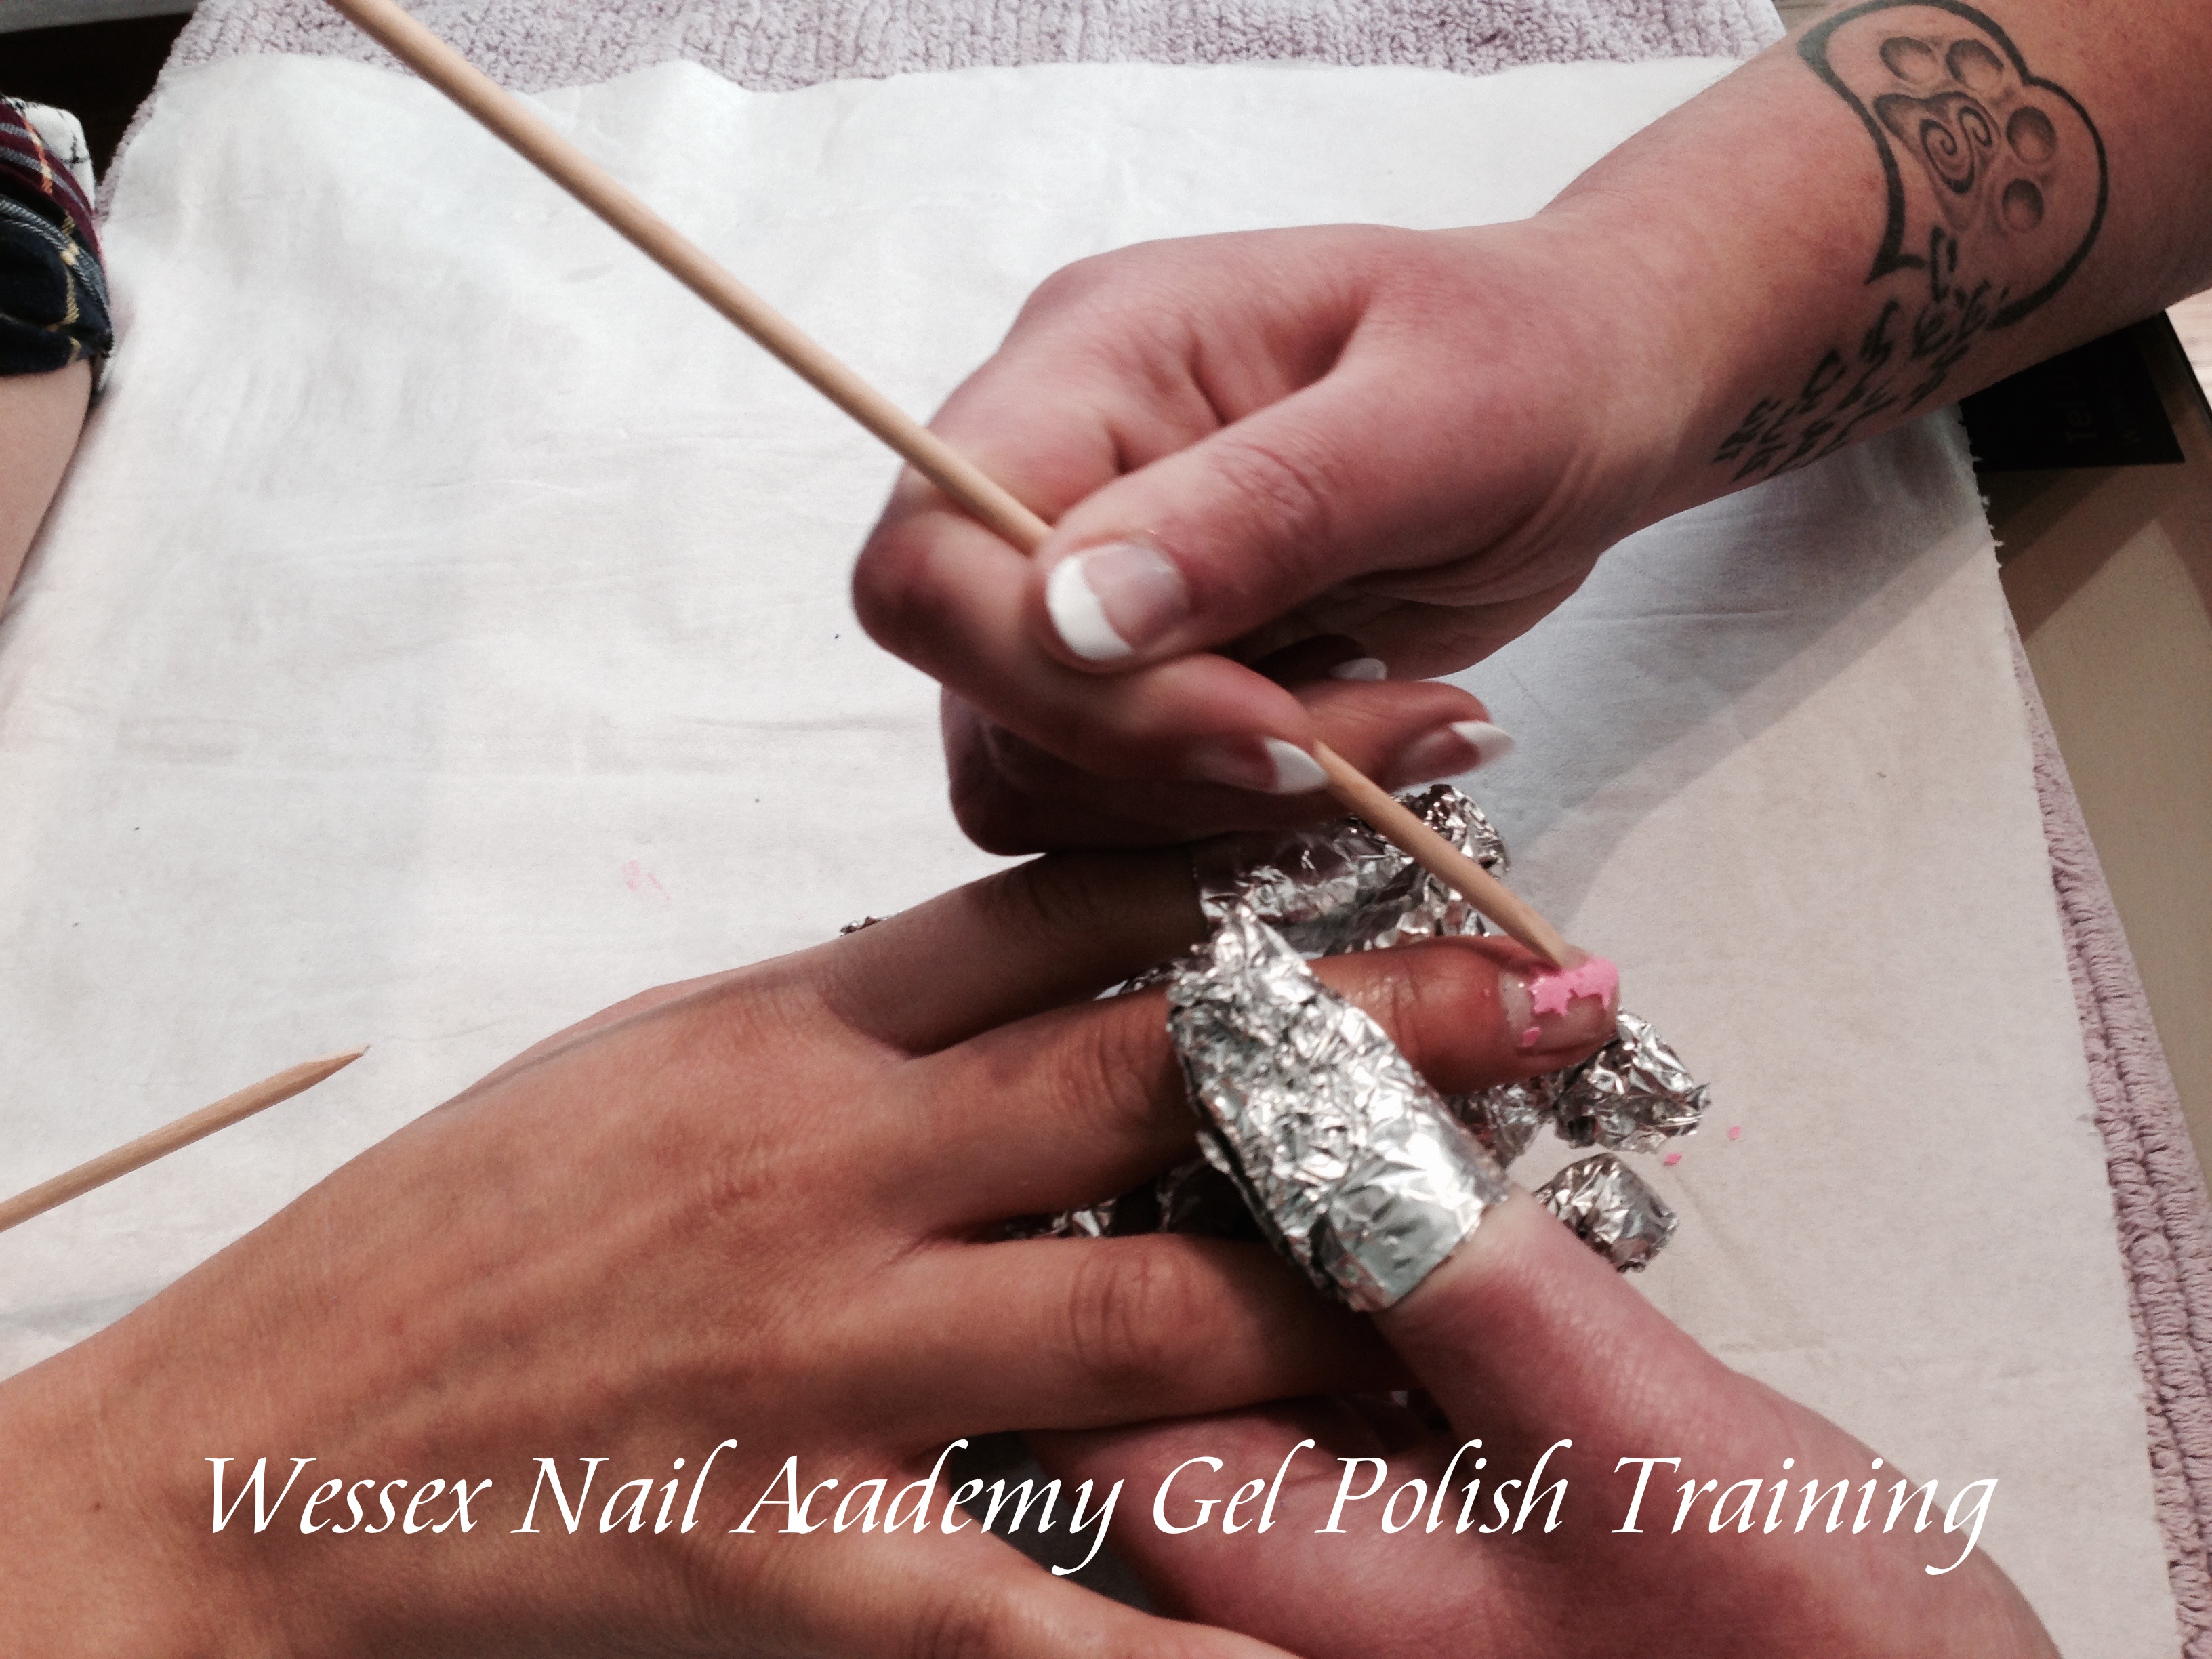 Gel Polish Beginners Manicure and Pedicure Nail training Courses, Nail extension training, nail training course, Wessex Nail Academy Okeford Fitzpaine, Dorset